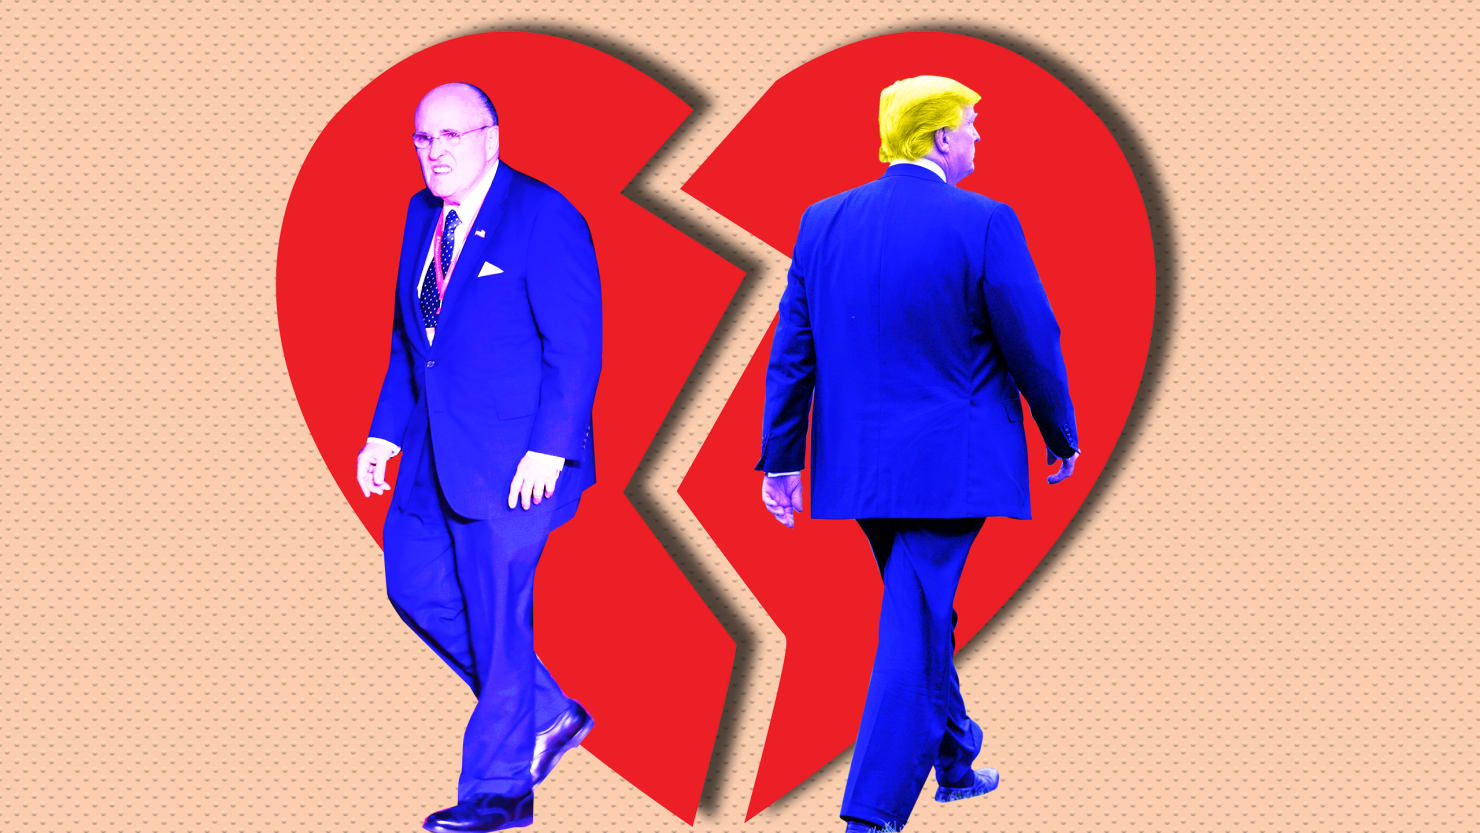 Rudy Giuliani and Donald Trump: This Will End Badly. And Probably Soon.